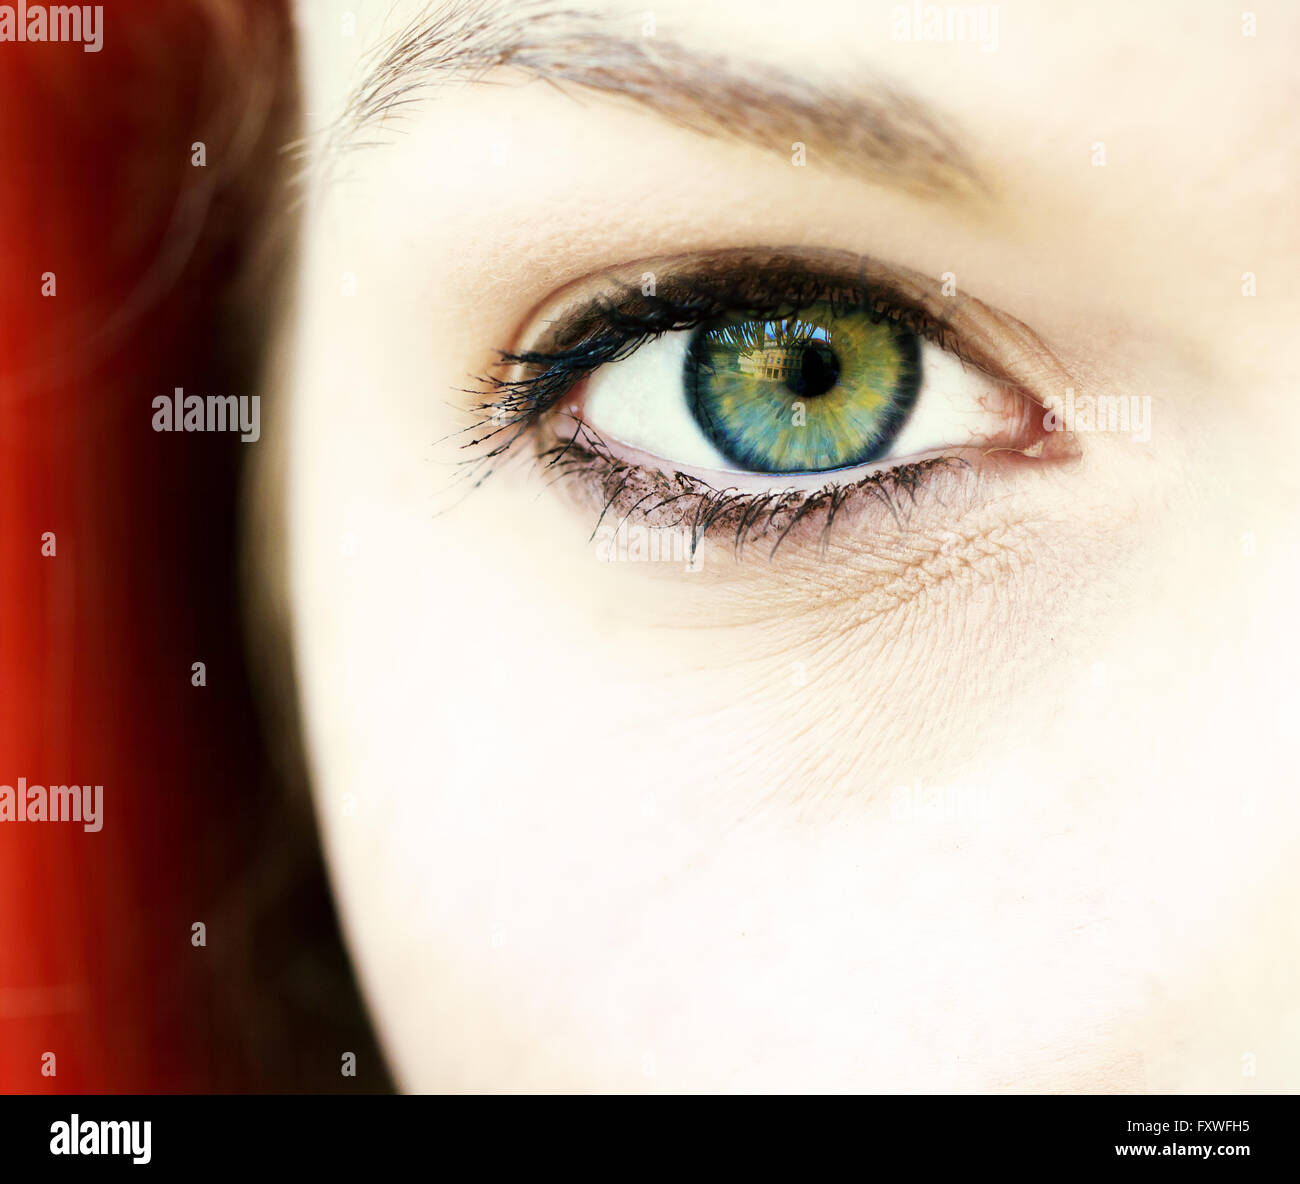 Eye of a young woman Photo Stock